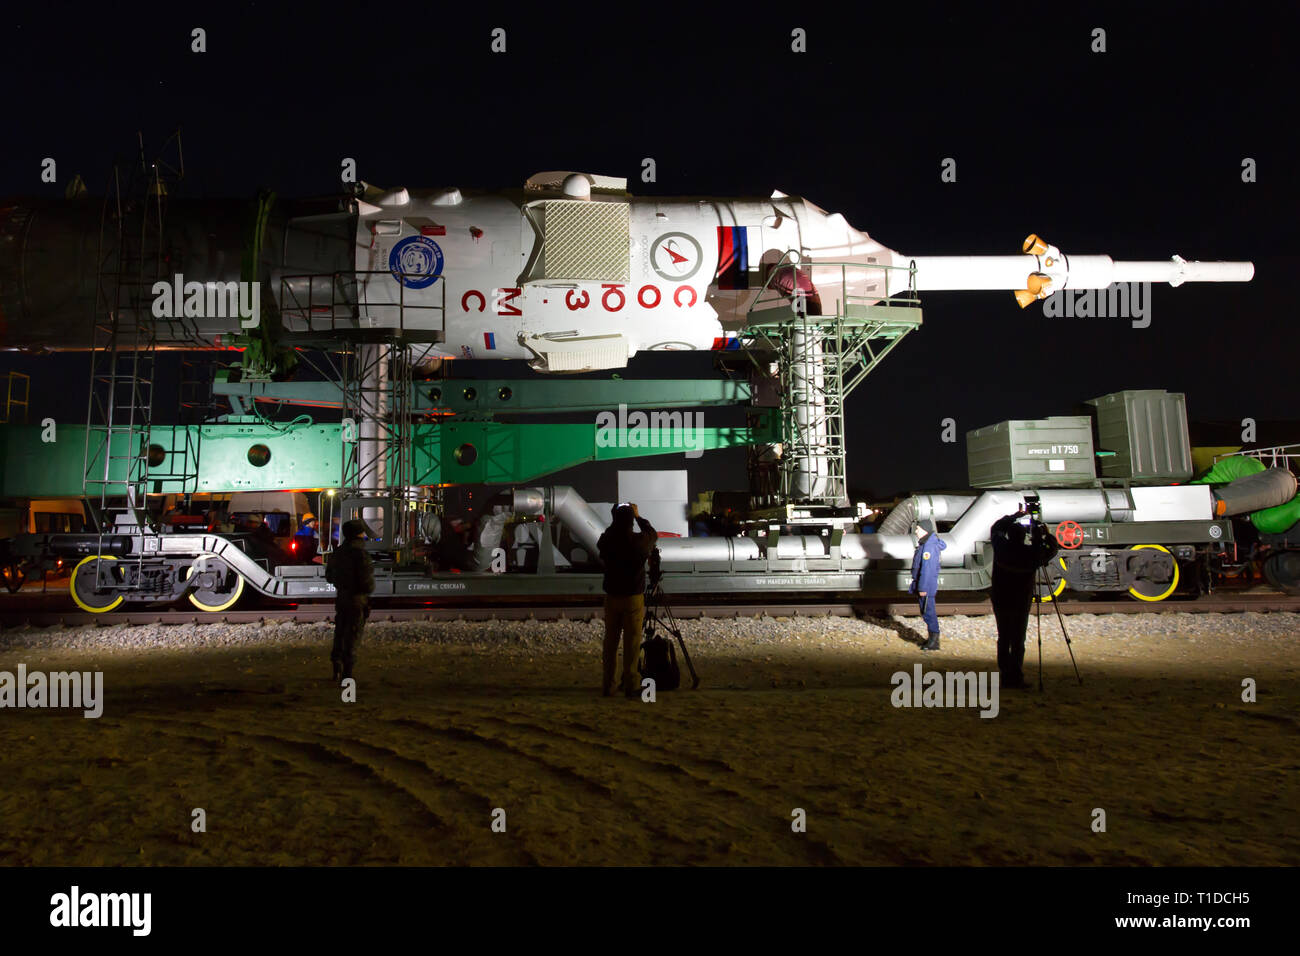 BAIKONUR - The Soyuz rocket MS-03 is beeing rolled out of the assembly hall 112 for transportation to the Gagarin Start launchpad in the early morning - Stock Image